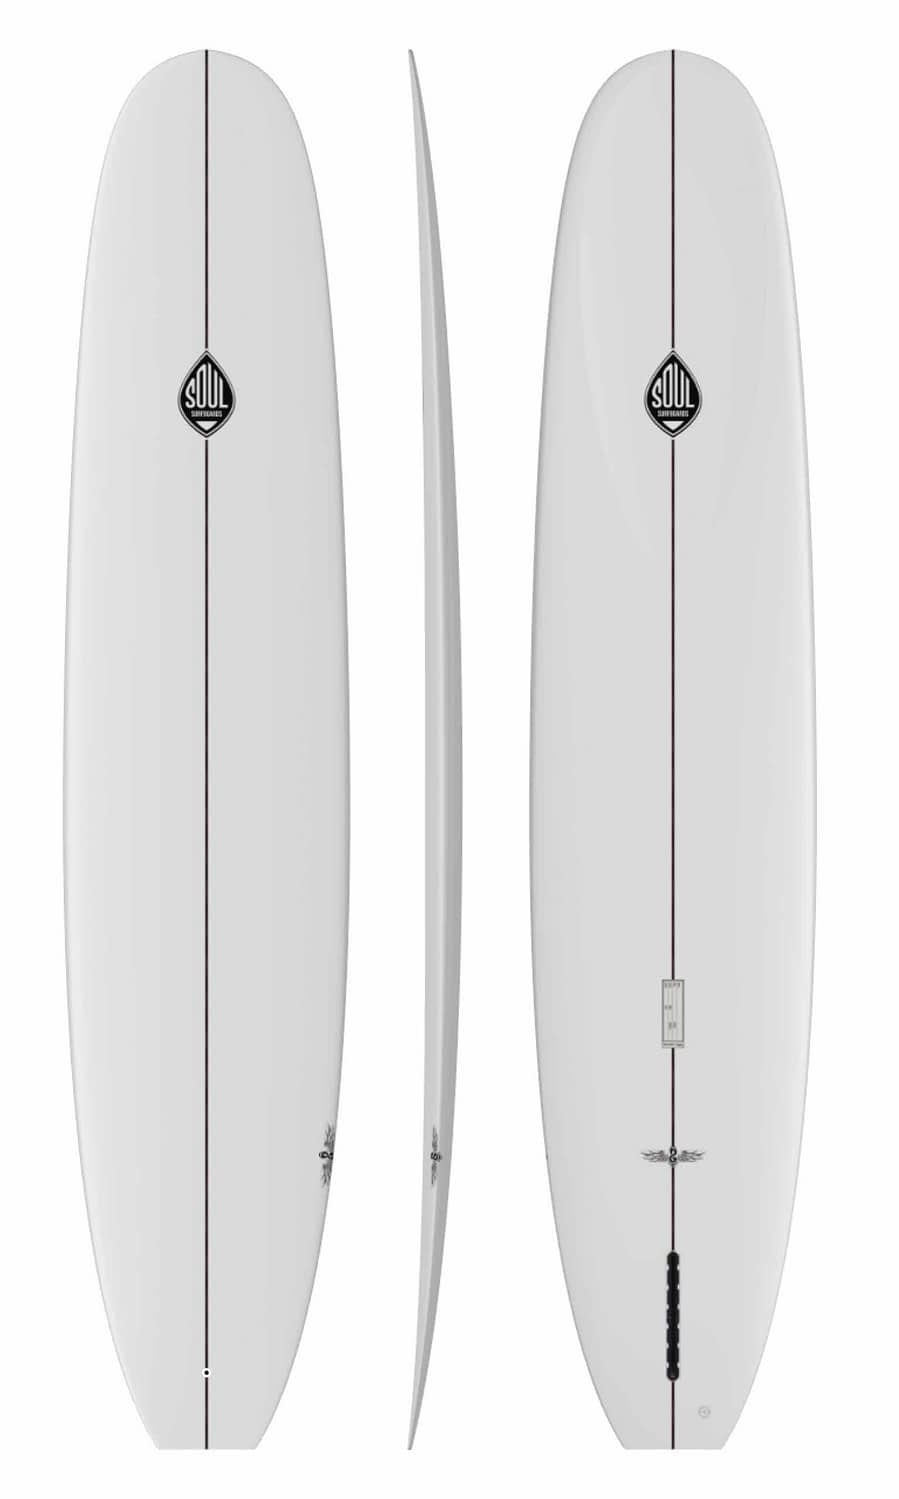 OBSESSION SOUL SURFBOARDS